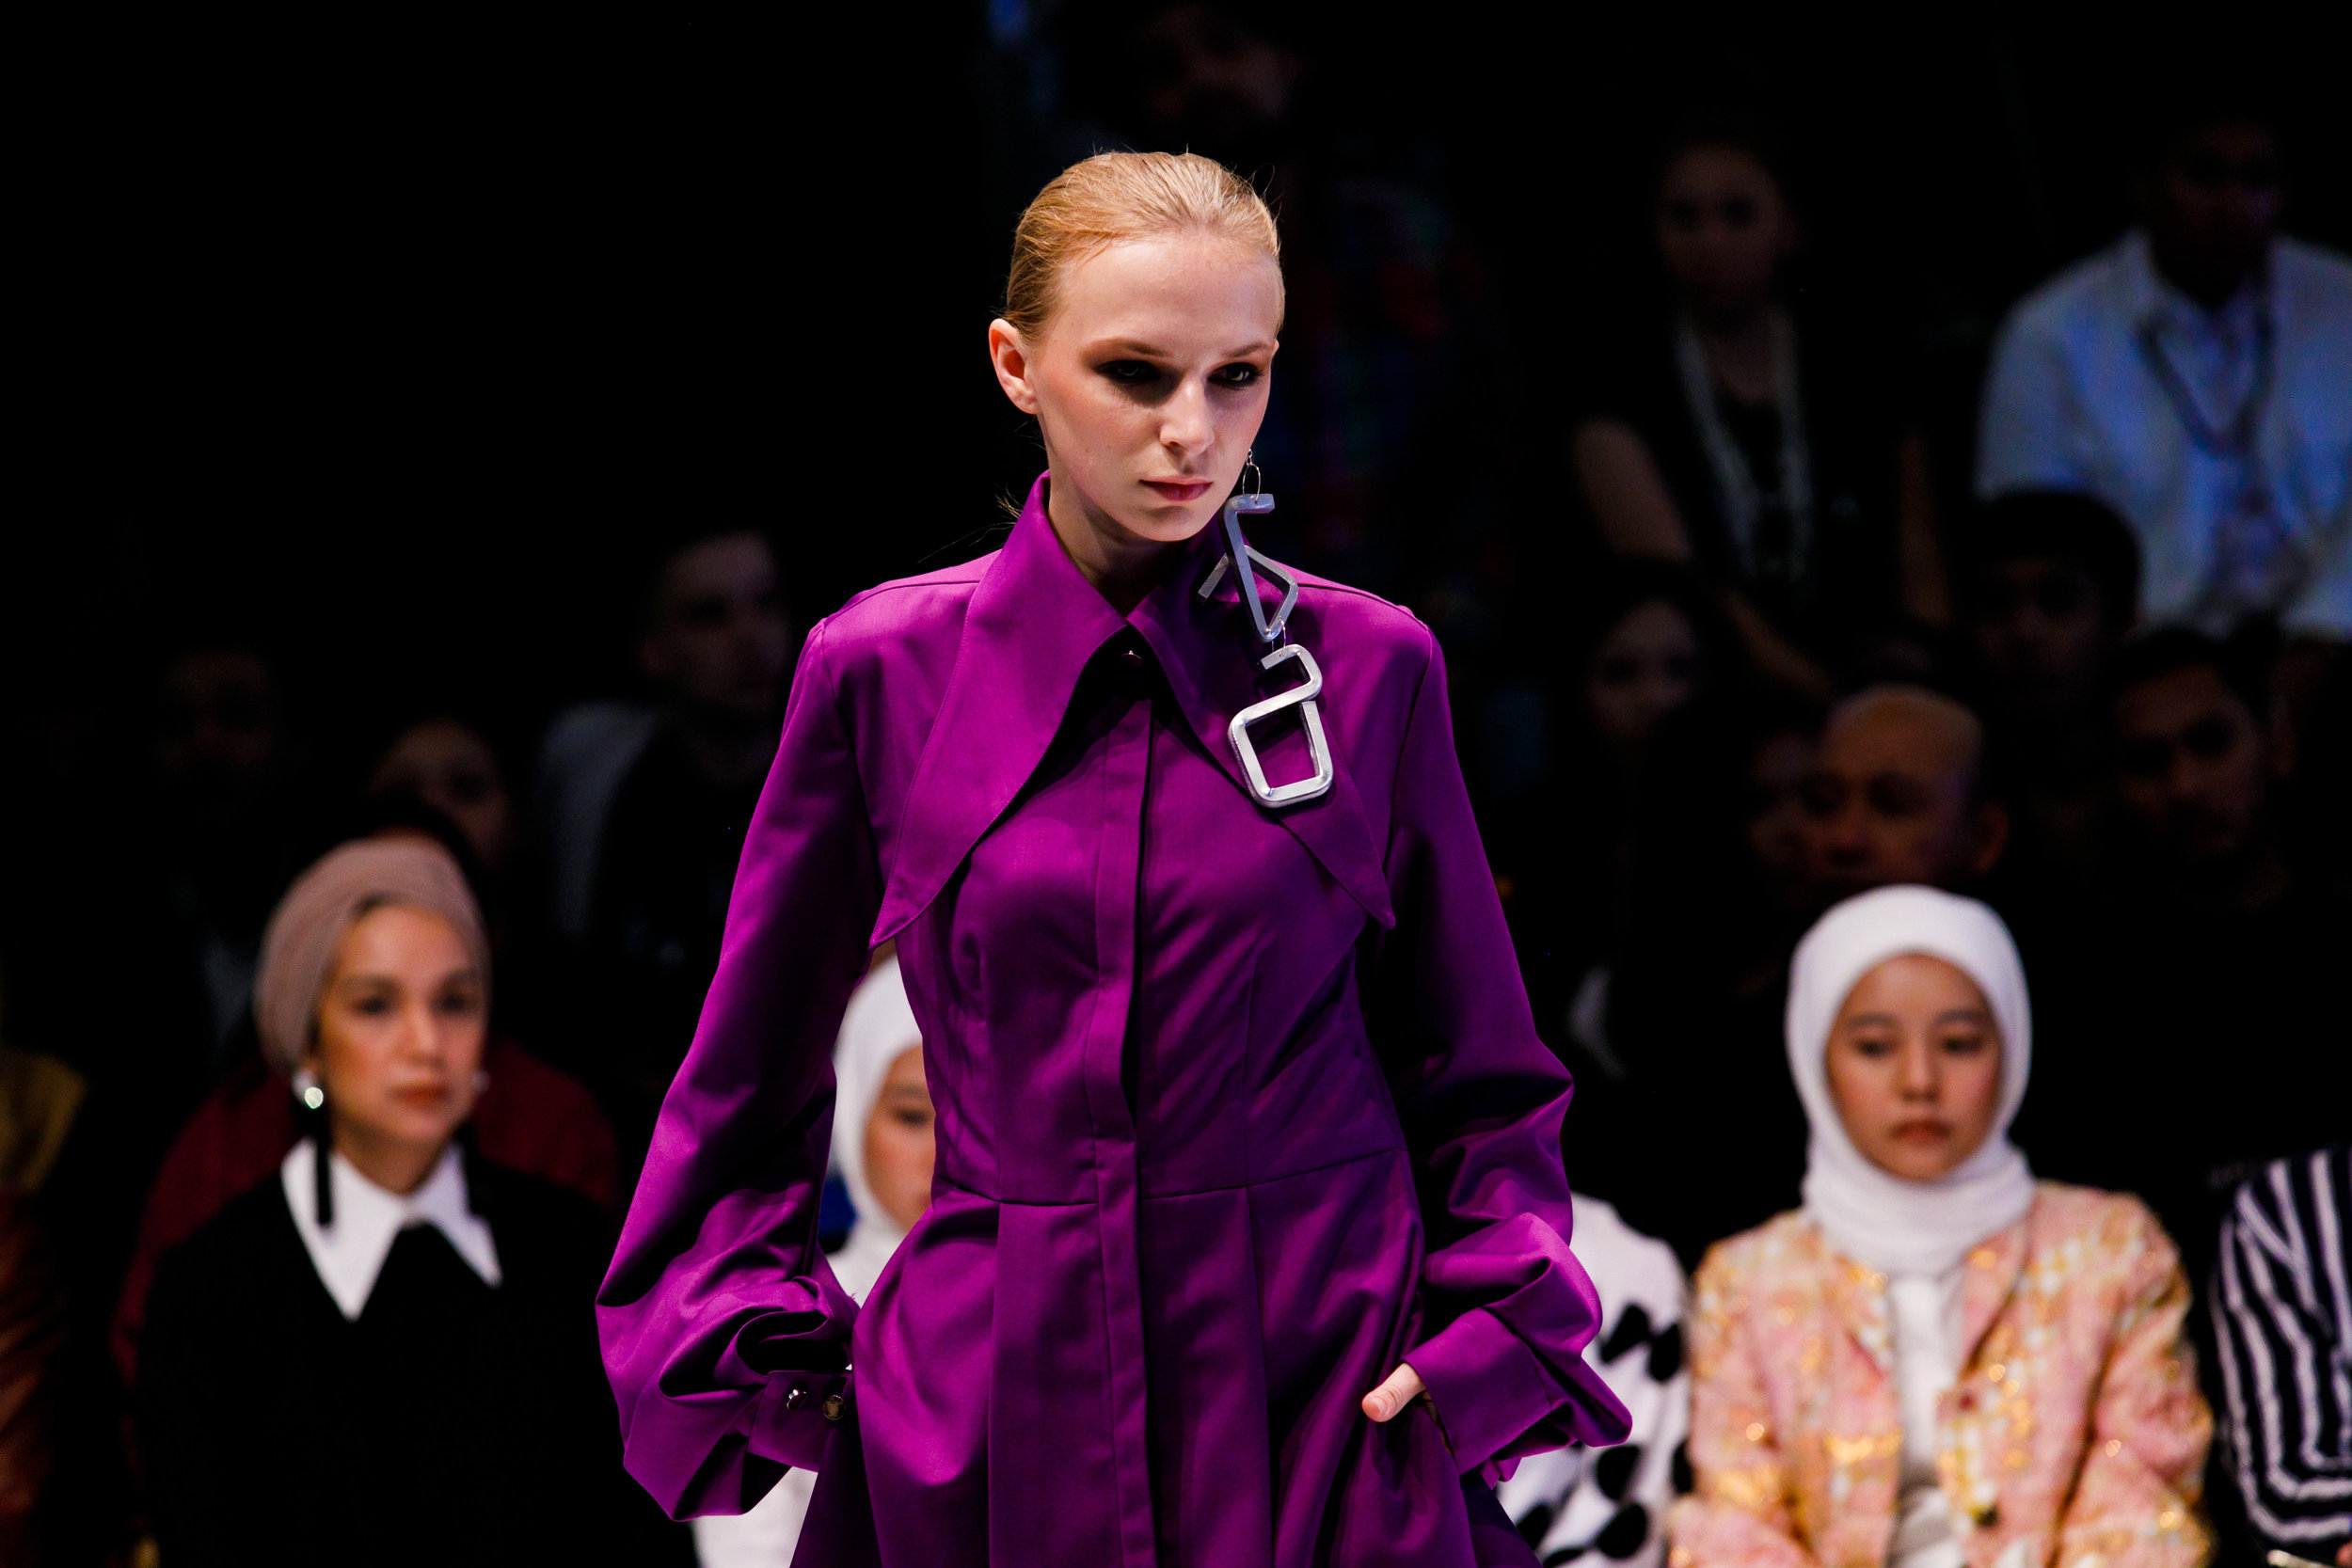 KLFW2018 - Day 5 - 0_045790 - Photo by All Is Amazing.jpg